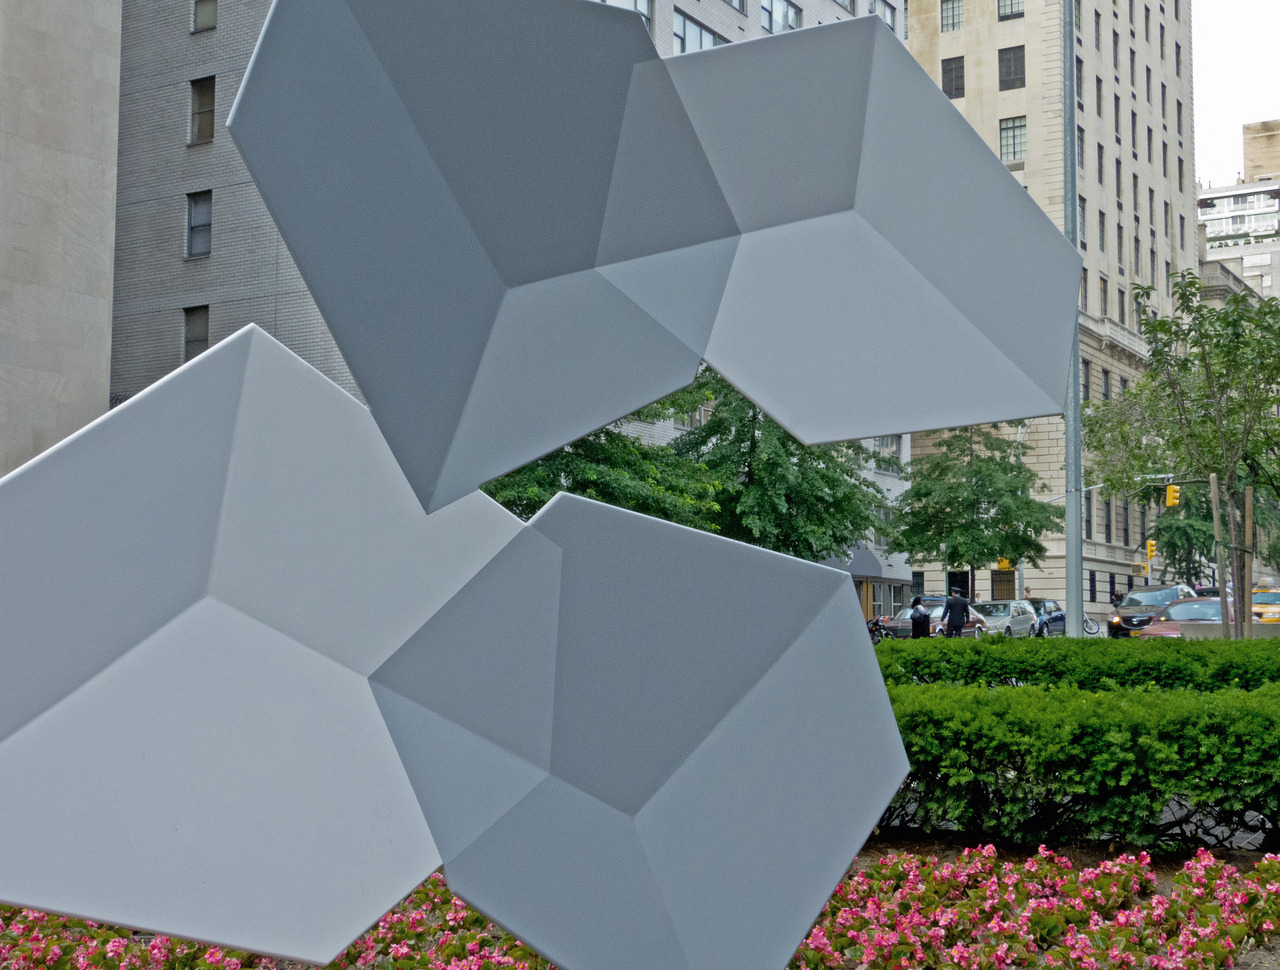 Sculpture….at Park Ave., New York.